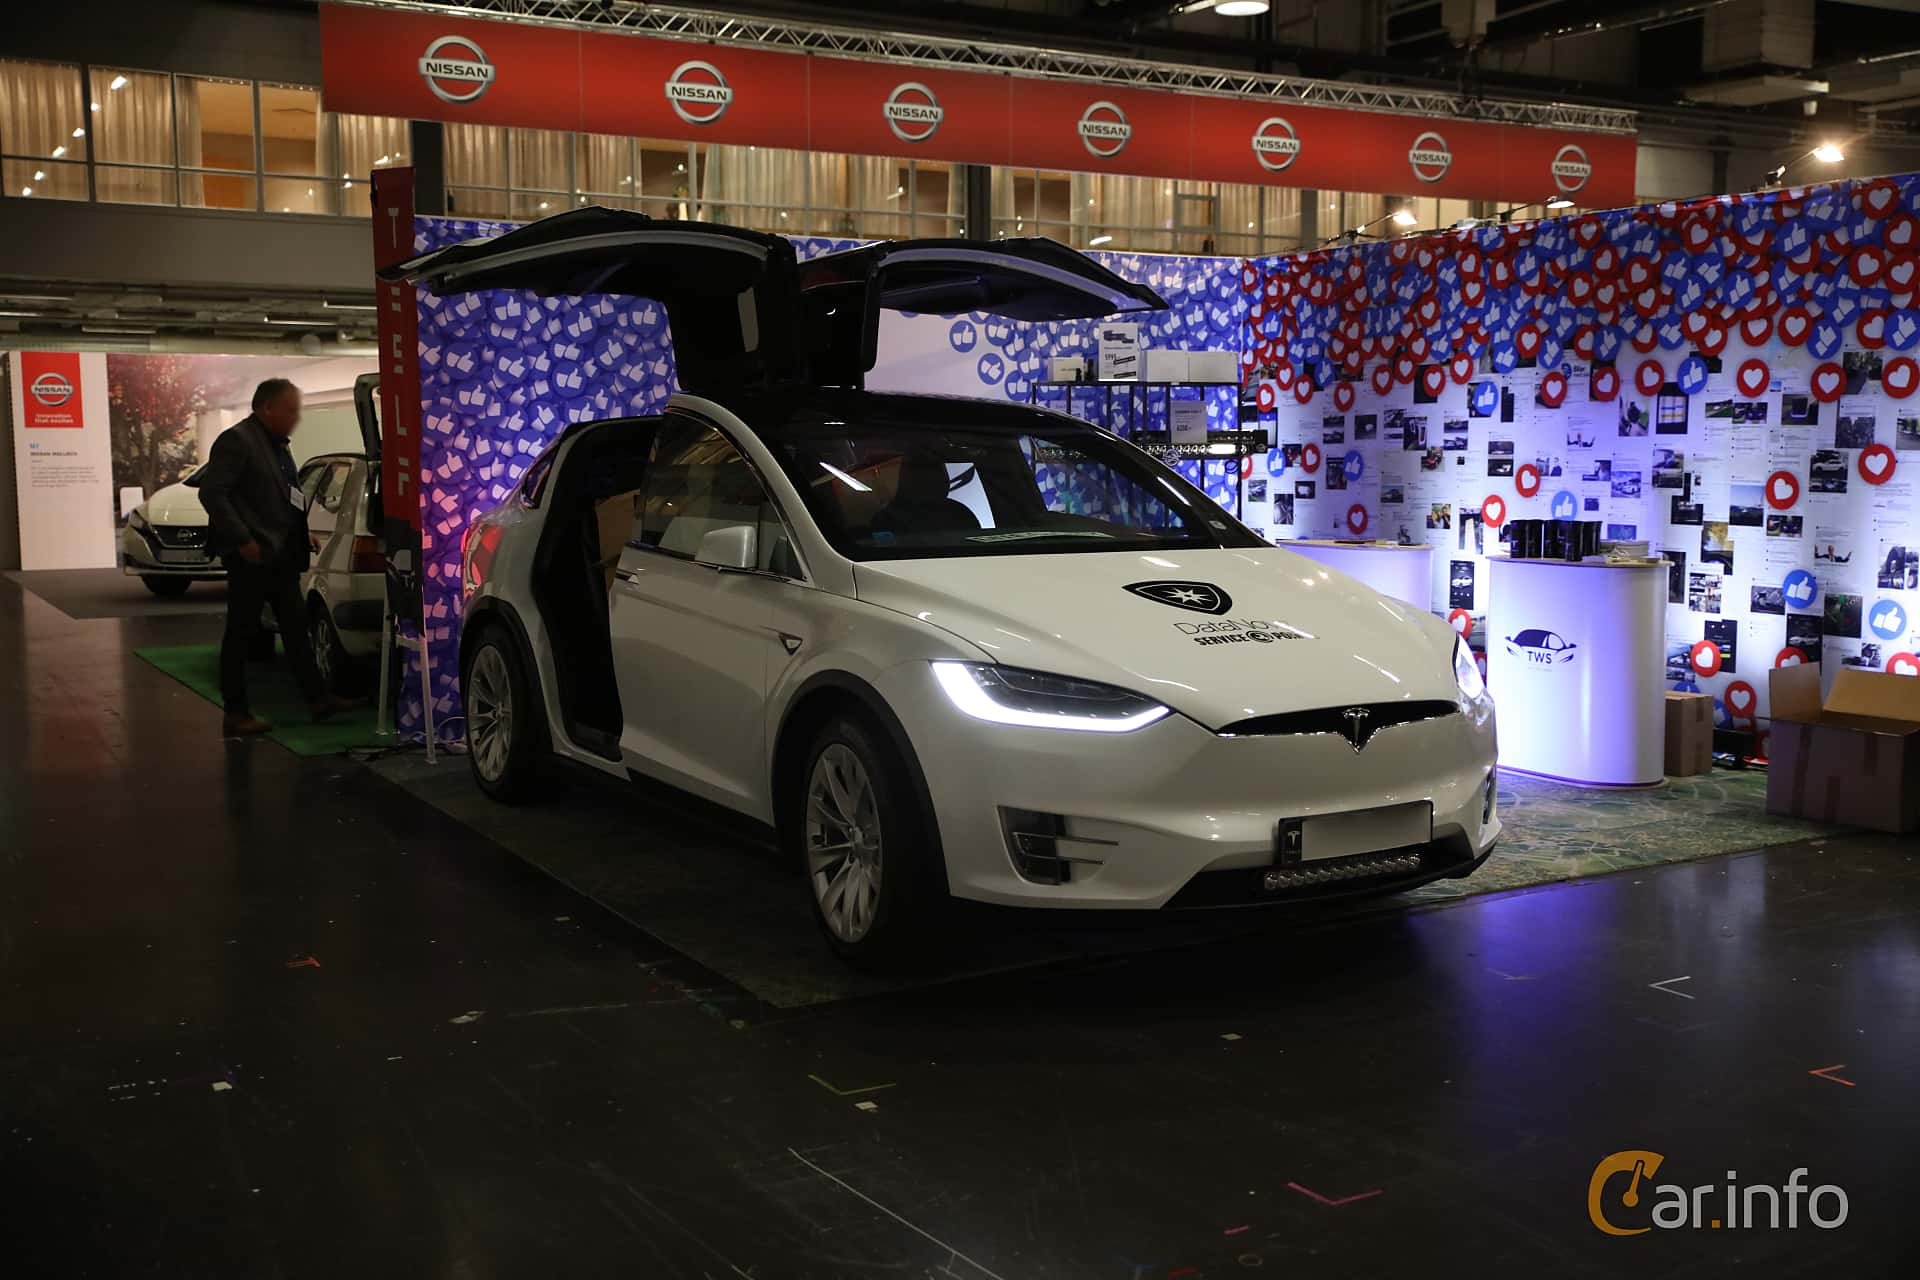 Tesla Model X 90D 90 kWh AWD Single Speed, 423hp, 2016 at eCar Expo Göteborg 2018